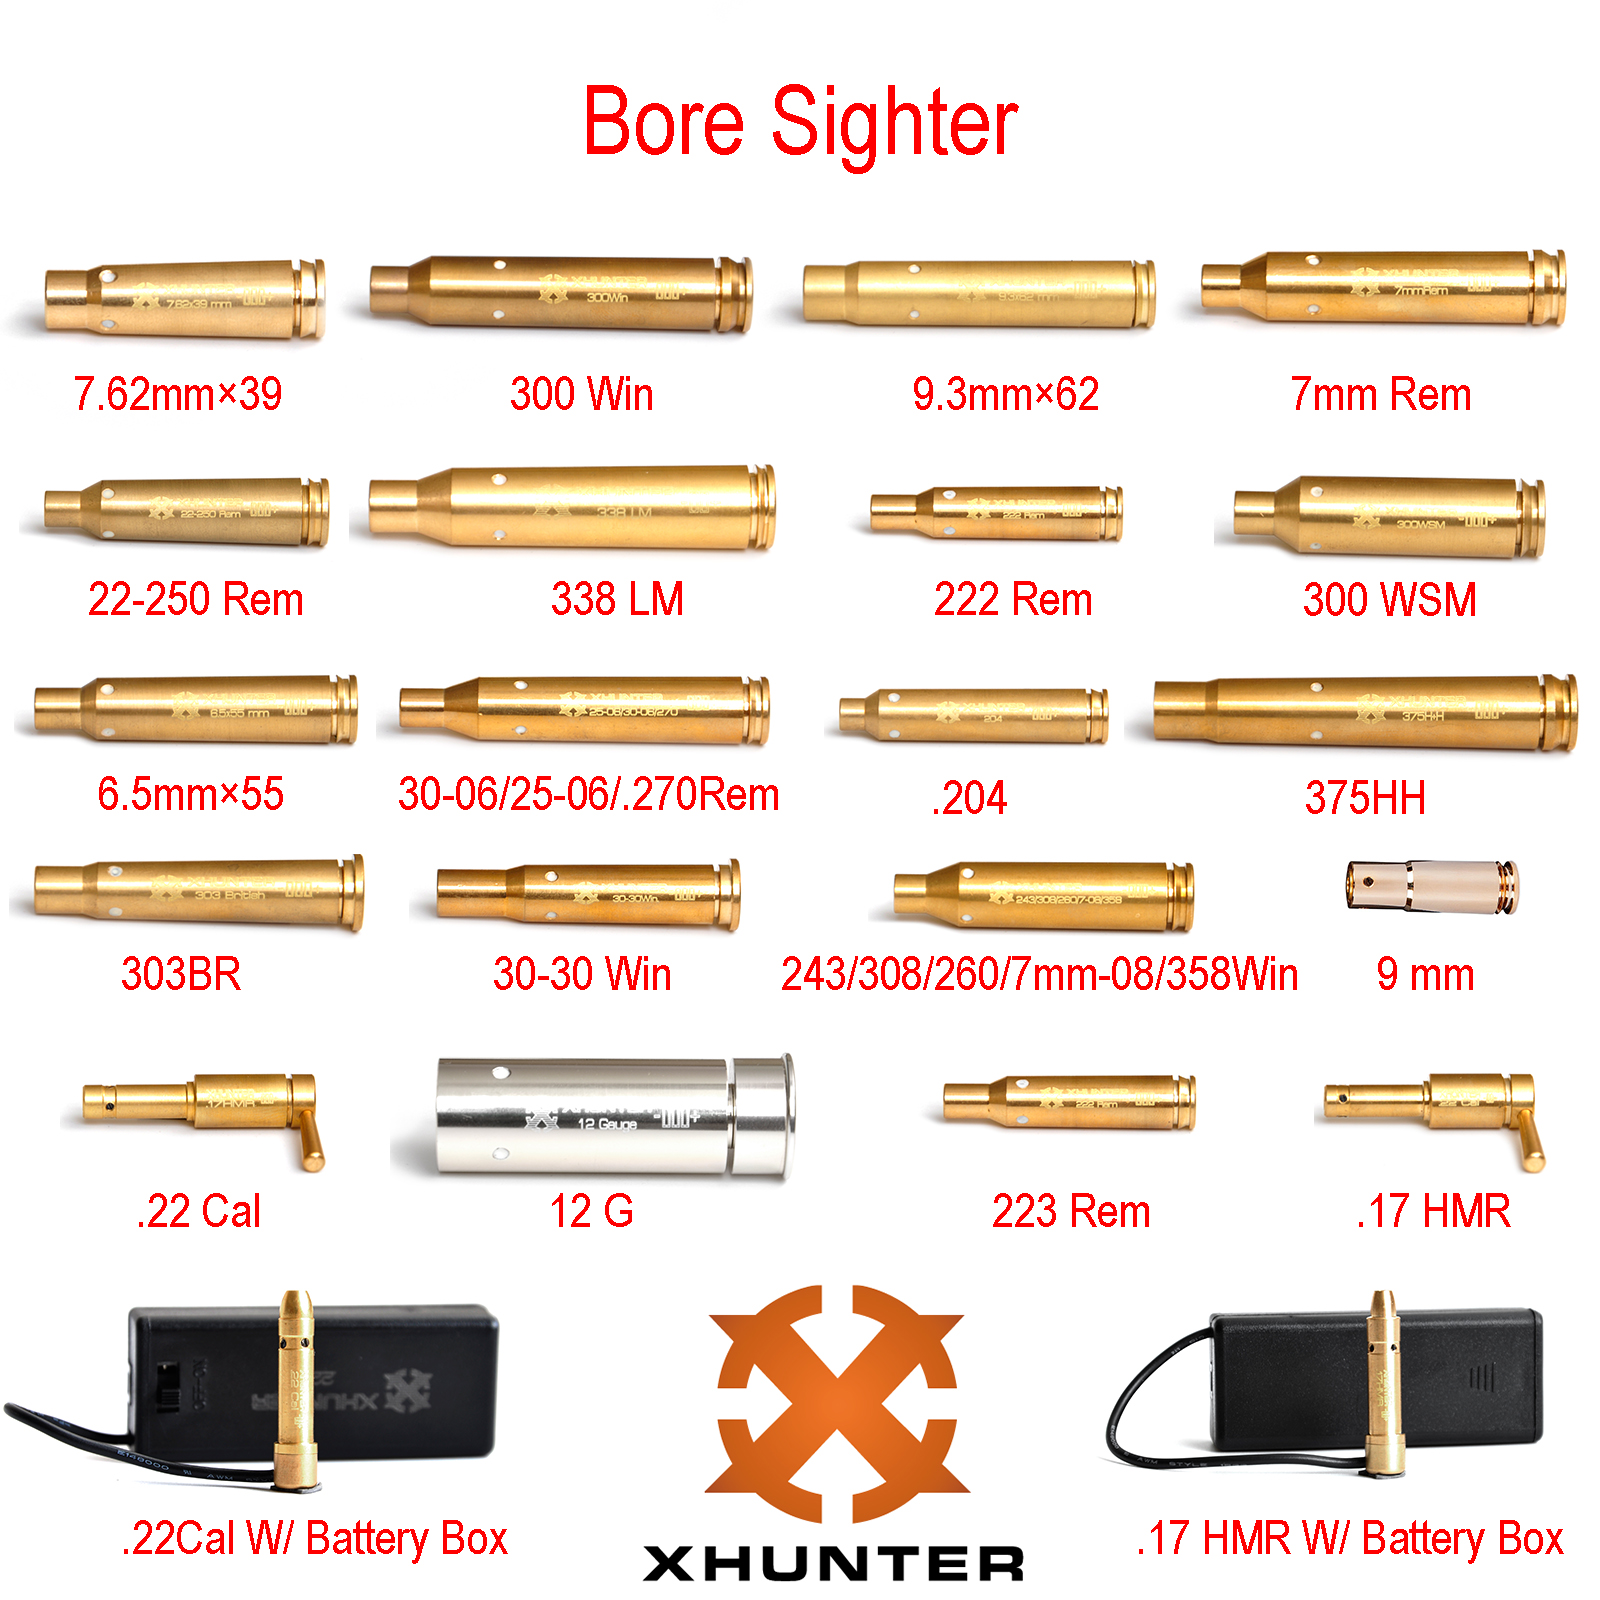 Xhunter Brass Copper Bore Sighter Laser Boresighter Red Dot Bore Sight Rifle Scope Hunting Shooting Tactical Borsight All Modes